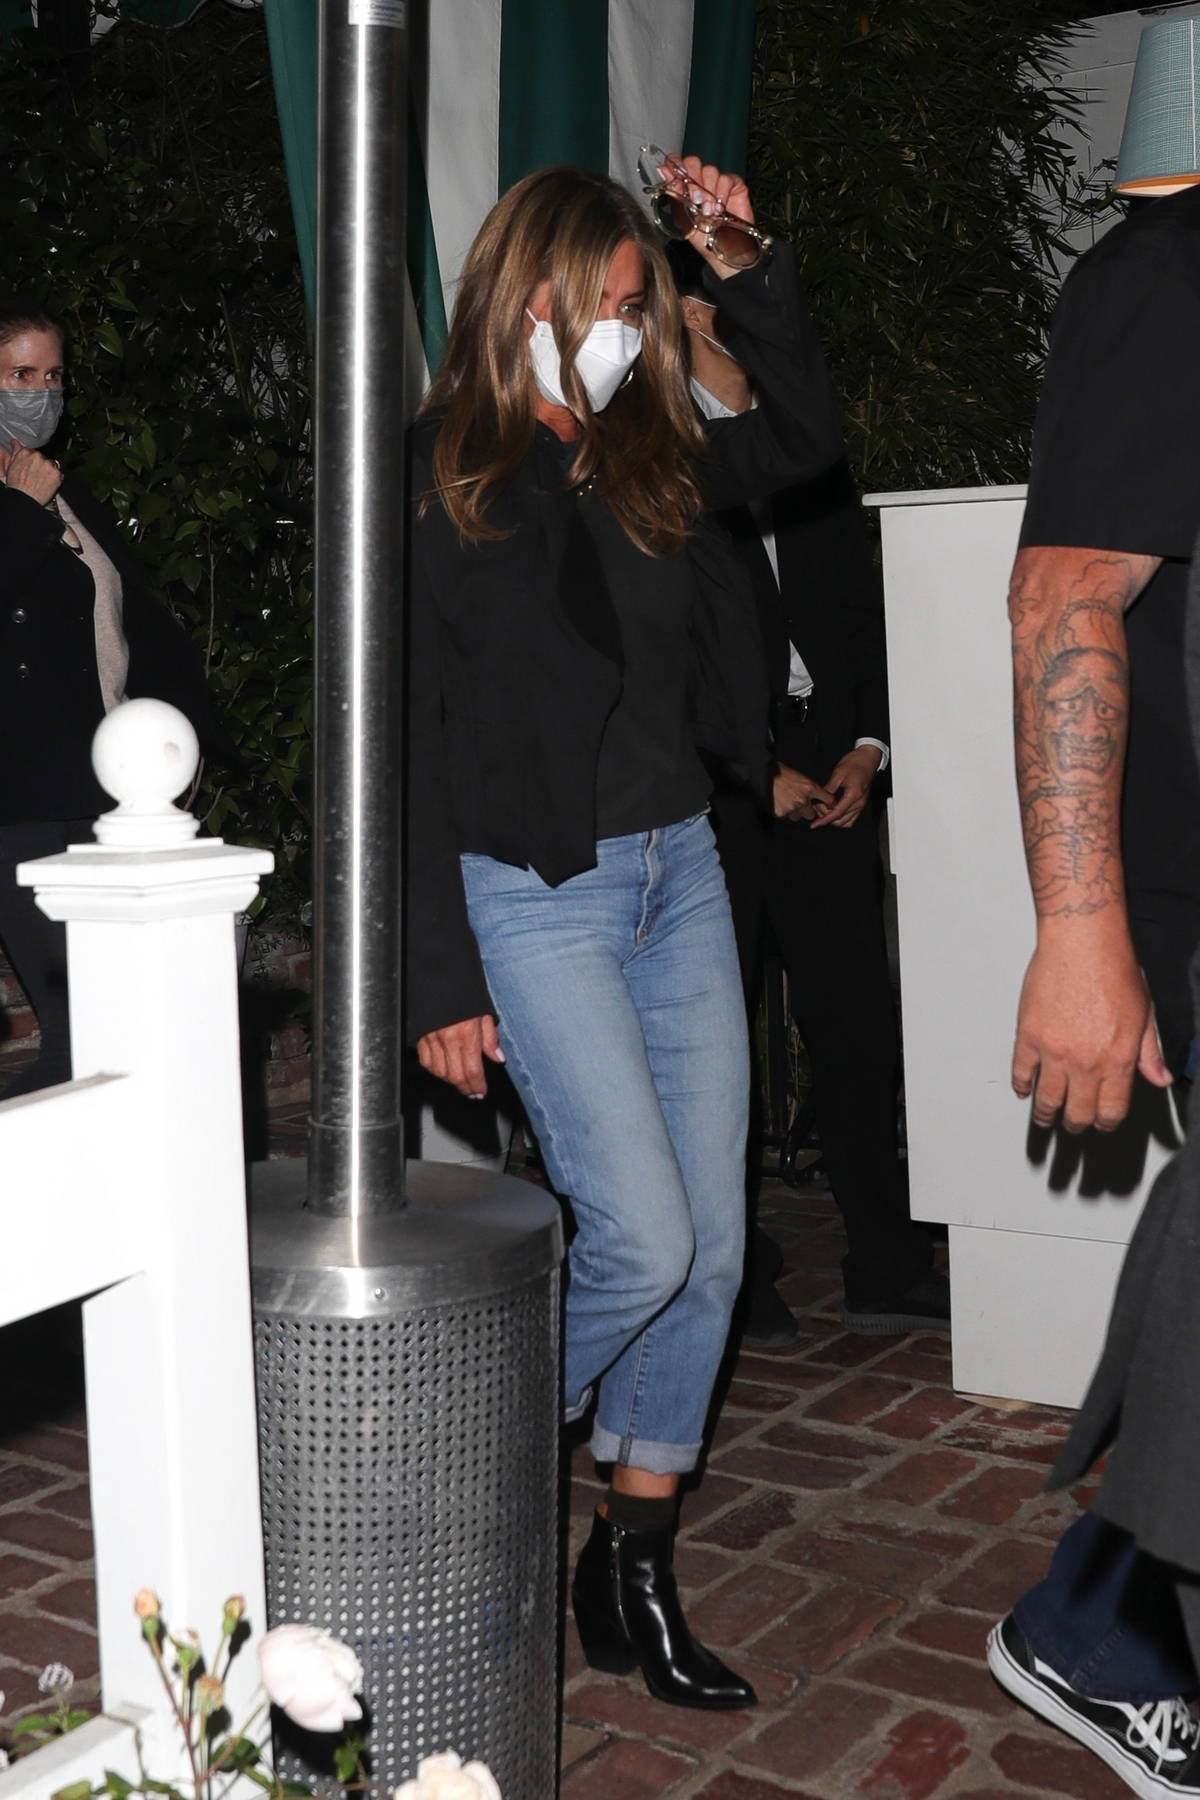 Jennifer Aniston seen leaving after dinner at San Vicente Bungalows in West Hollywood, California